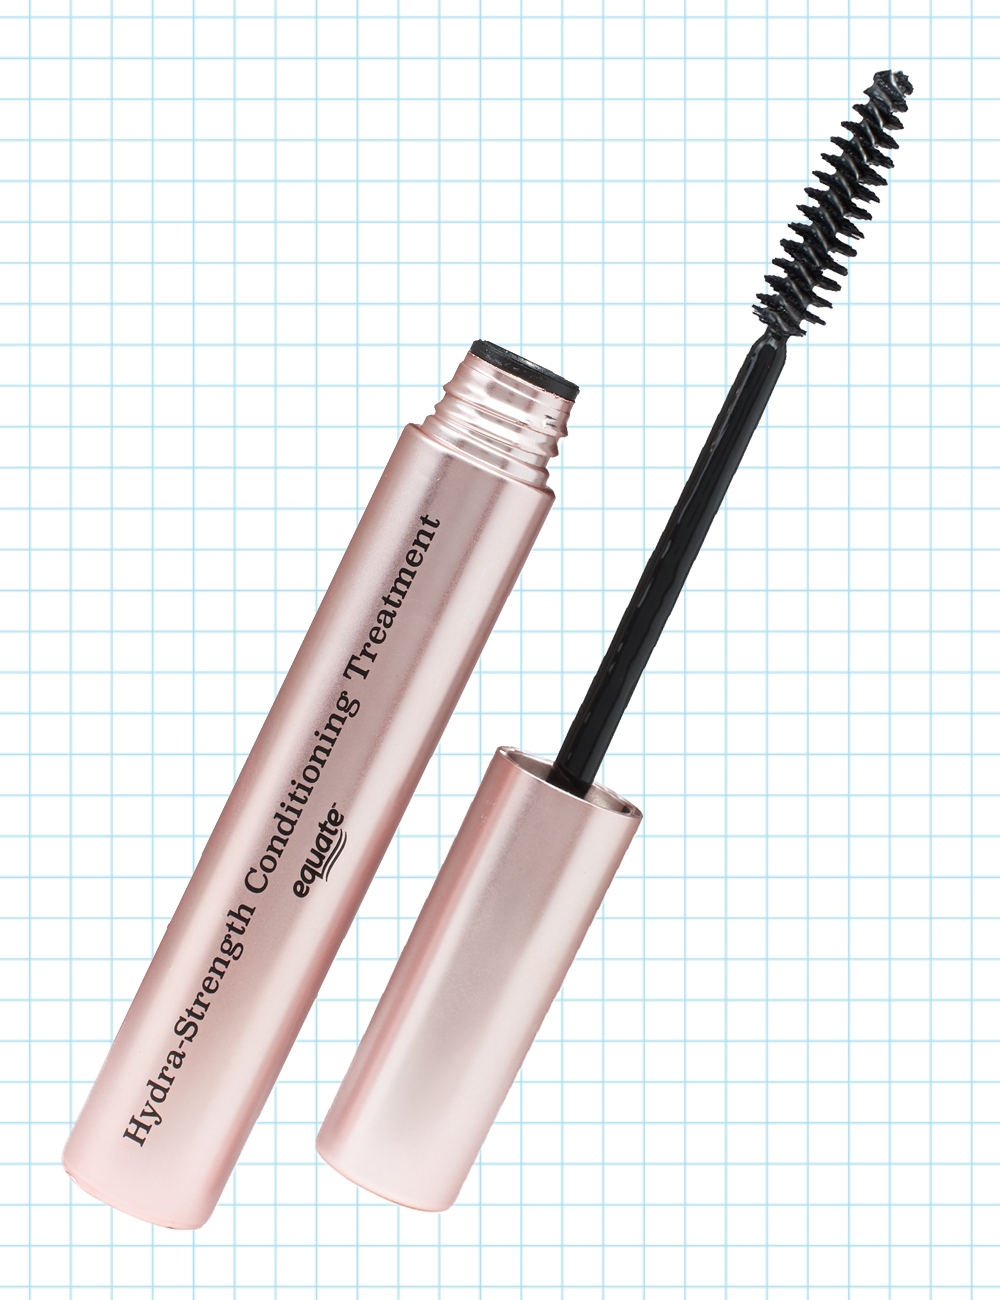 0b0b74e2d31 8 Best Eyelash Growth Serums - Products for Longer, Fuller Lashes